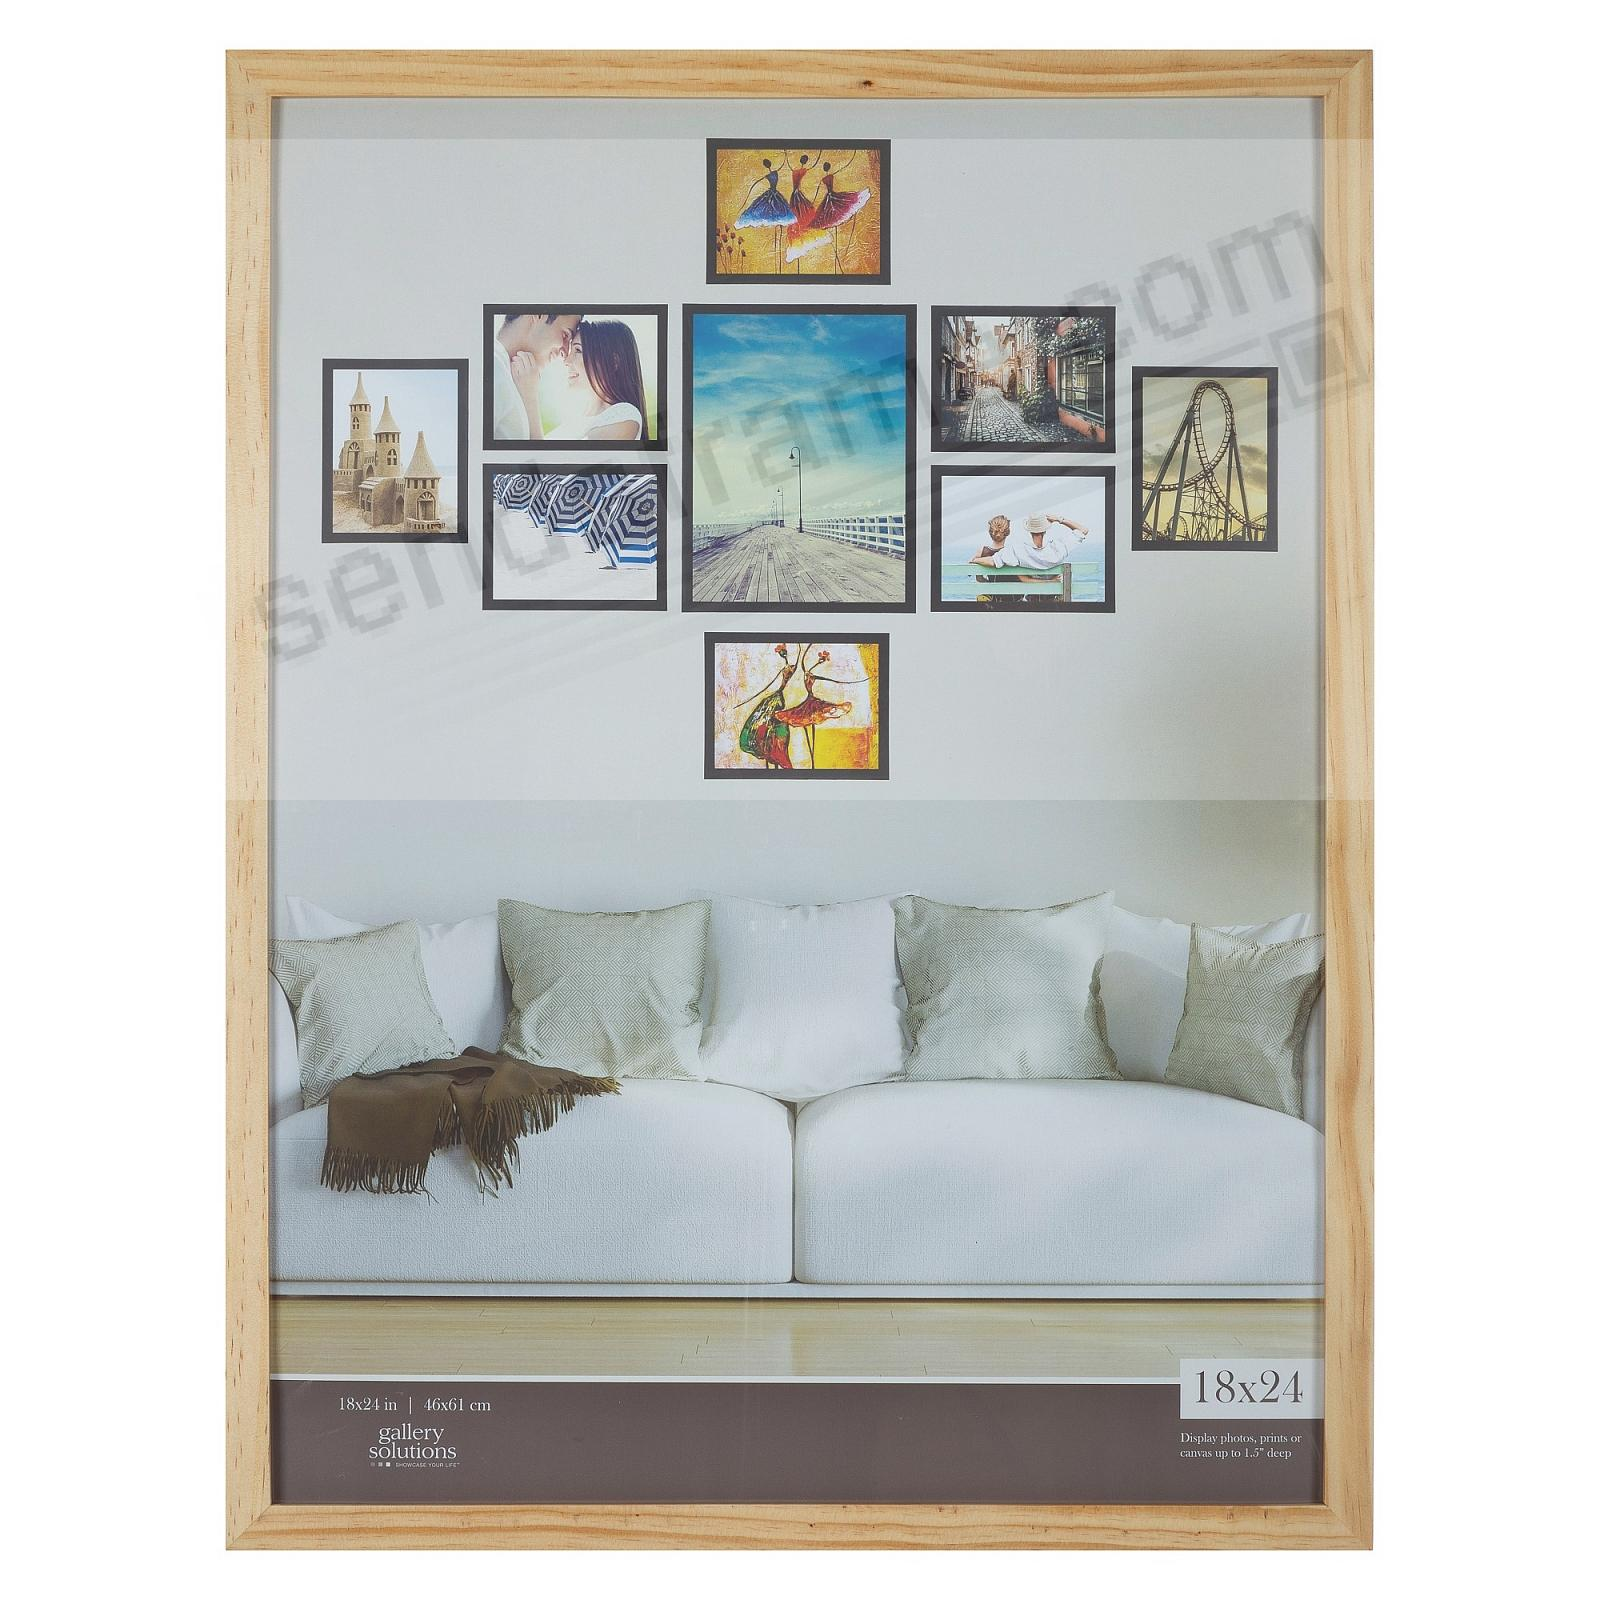 NATURAL GALLERY 18x24 frame by Gallery Solutions®